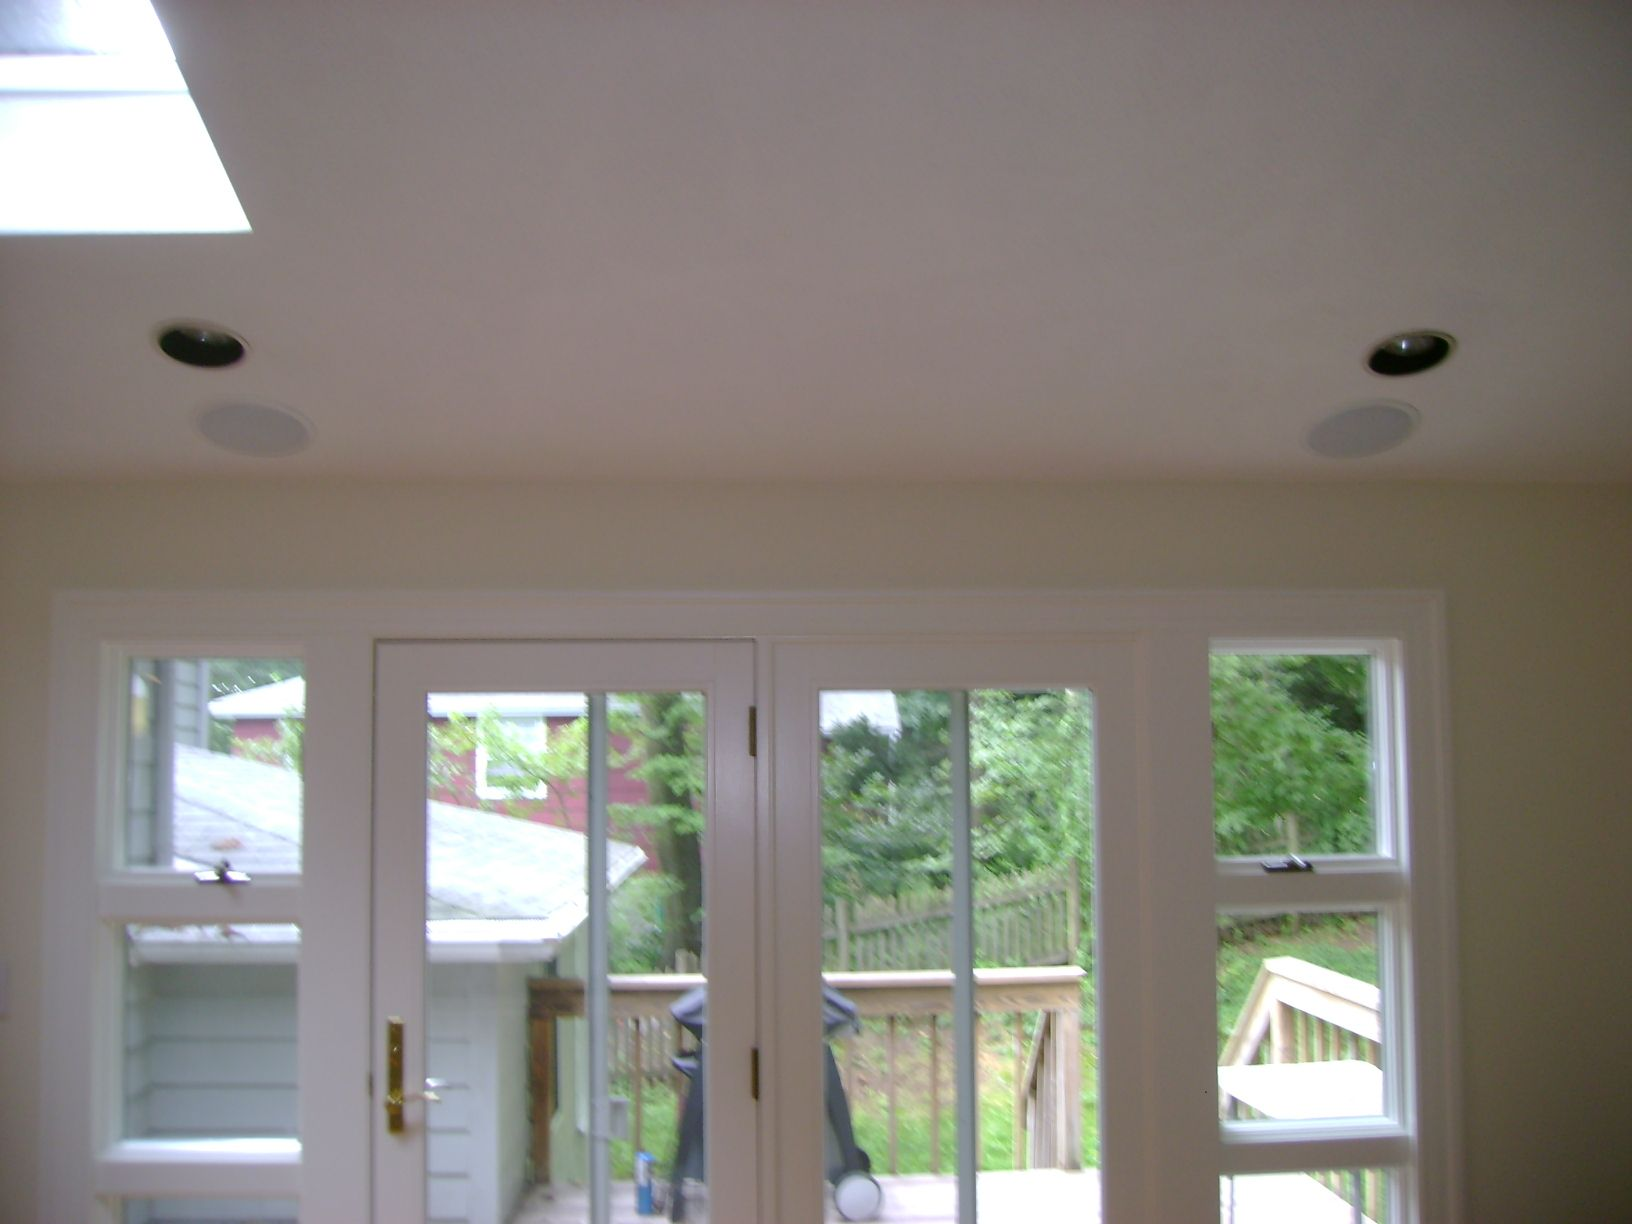 Surround Sound Rear In Ceiling Speakers